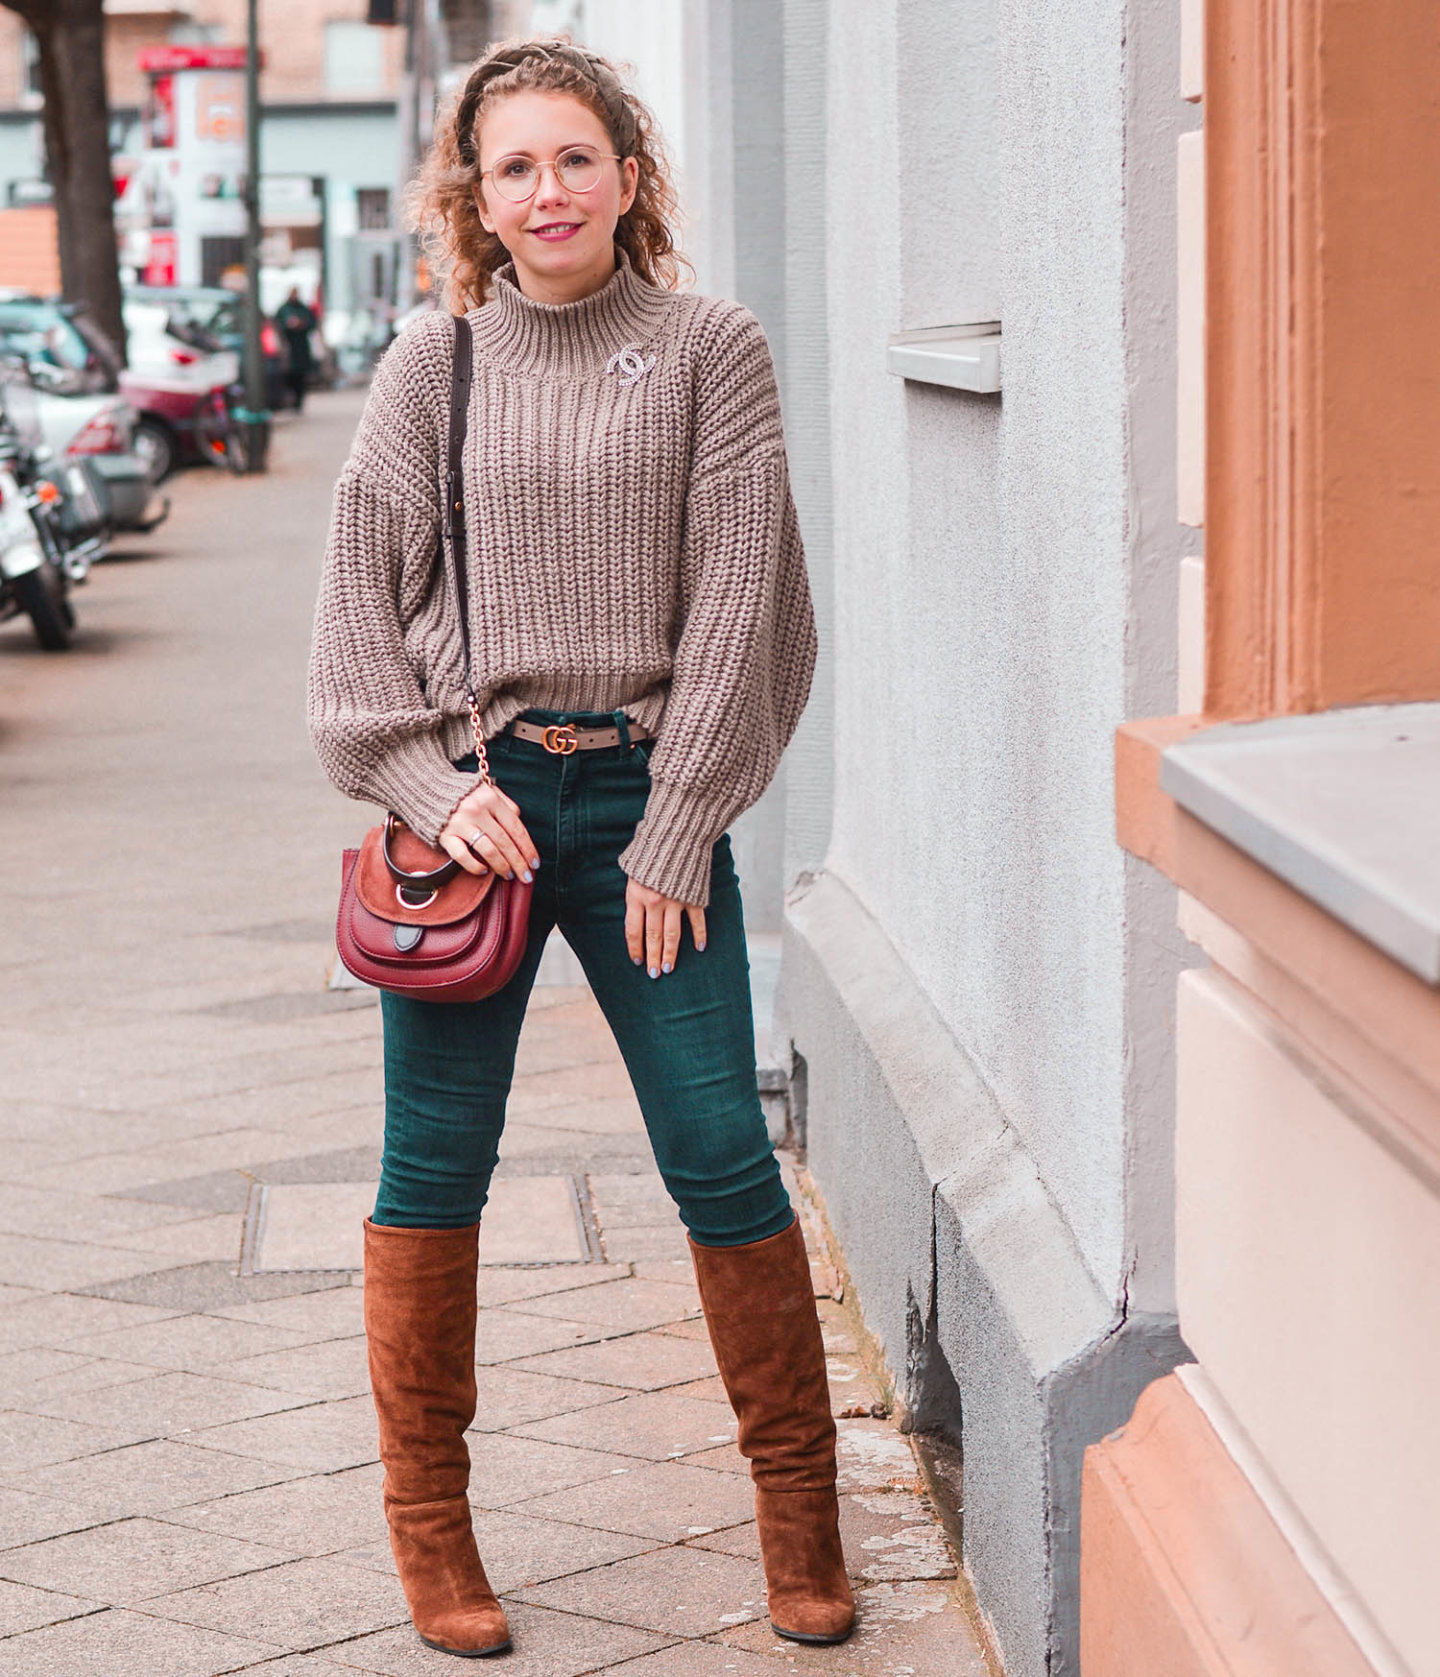 Jeans-Stiefel-Kombi Klassisches Outfit